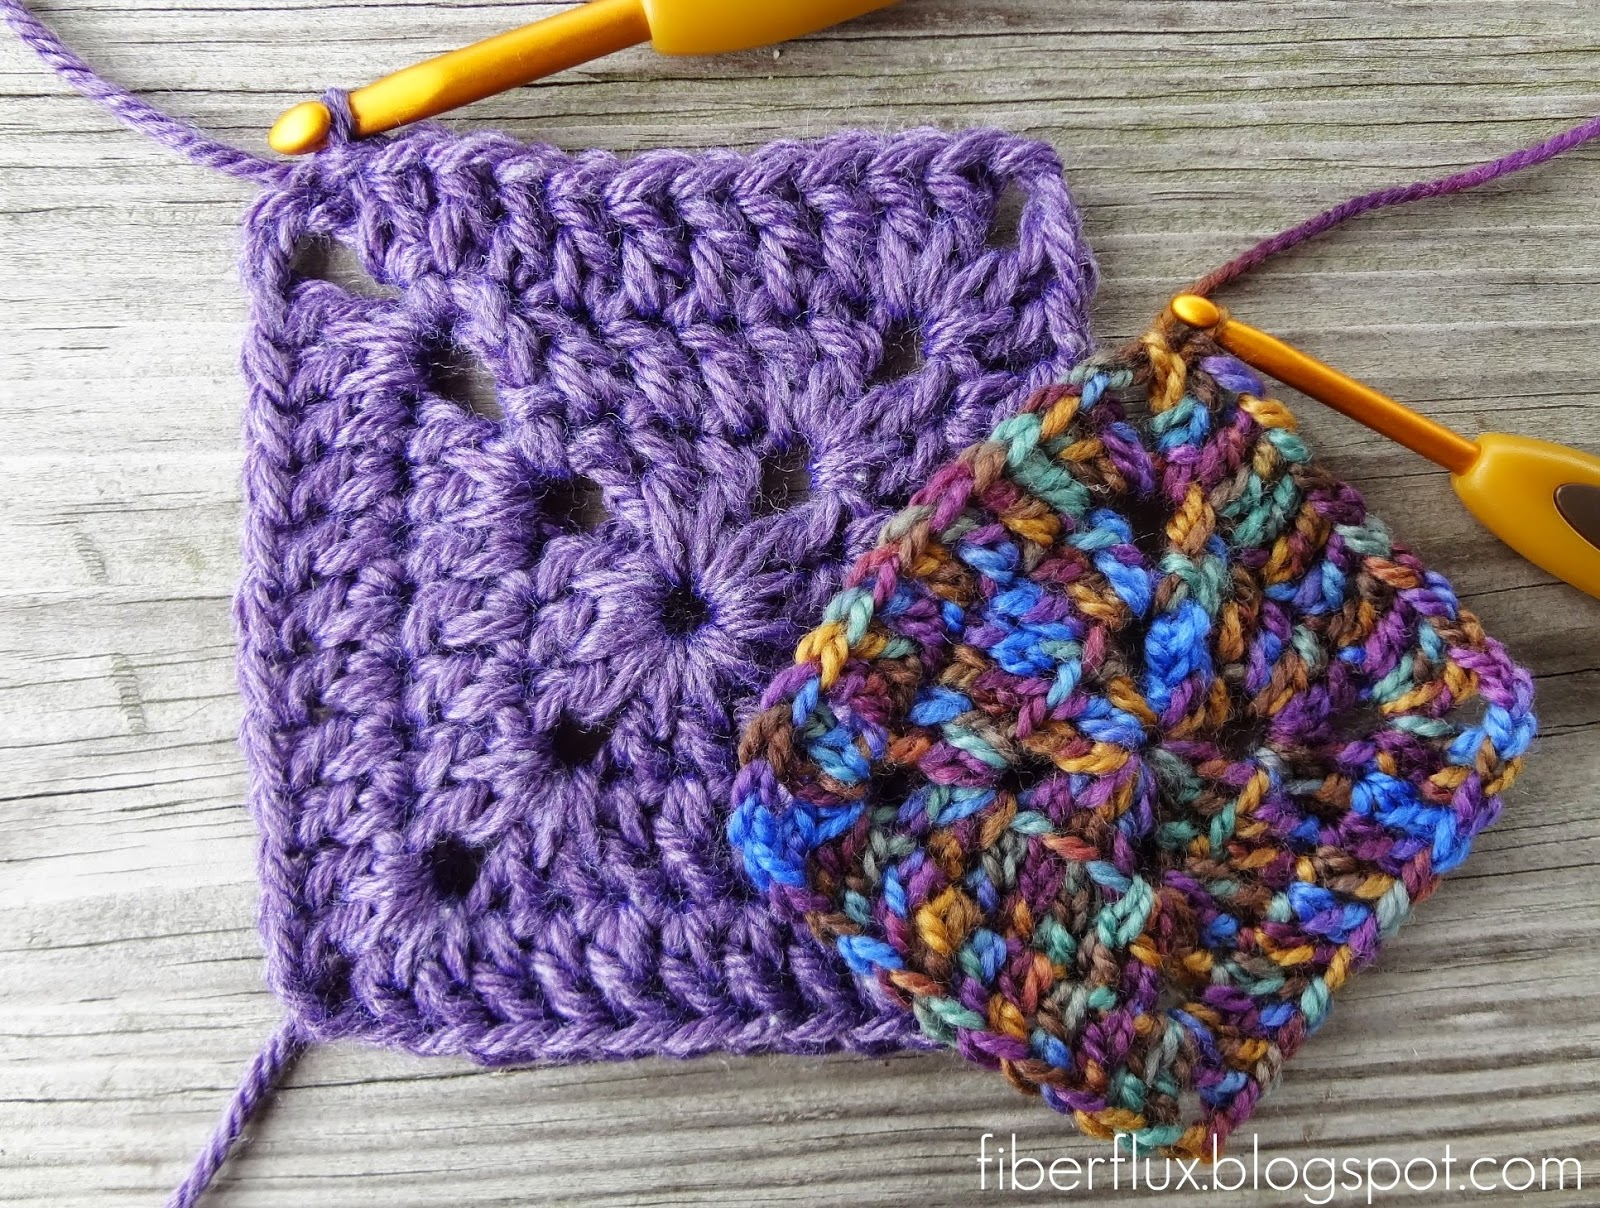 How To Crochet Granny Squares : Fiber Flux: How to Crochet a Solid Granny Square